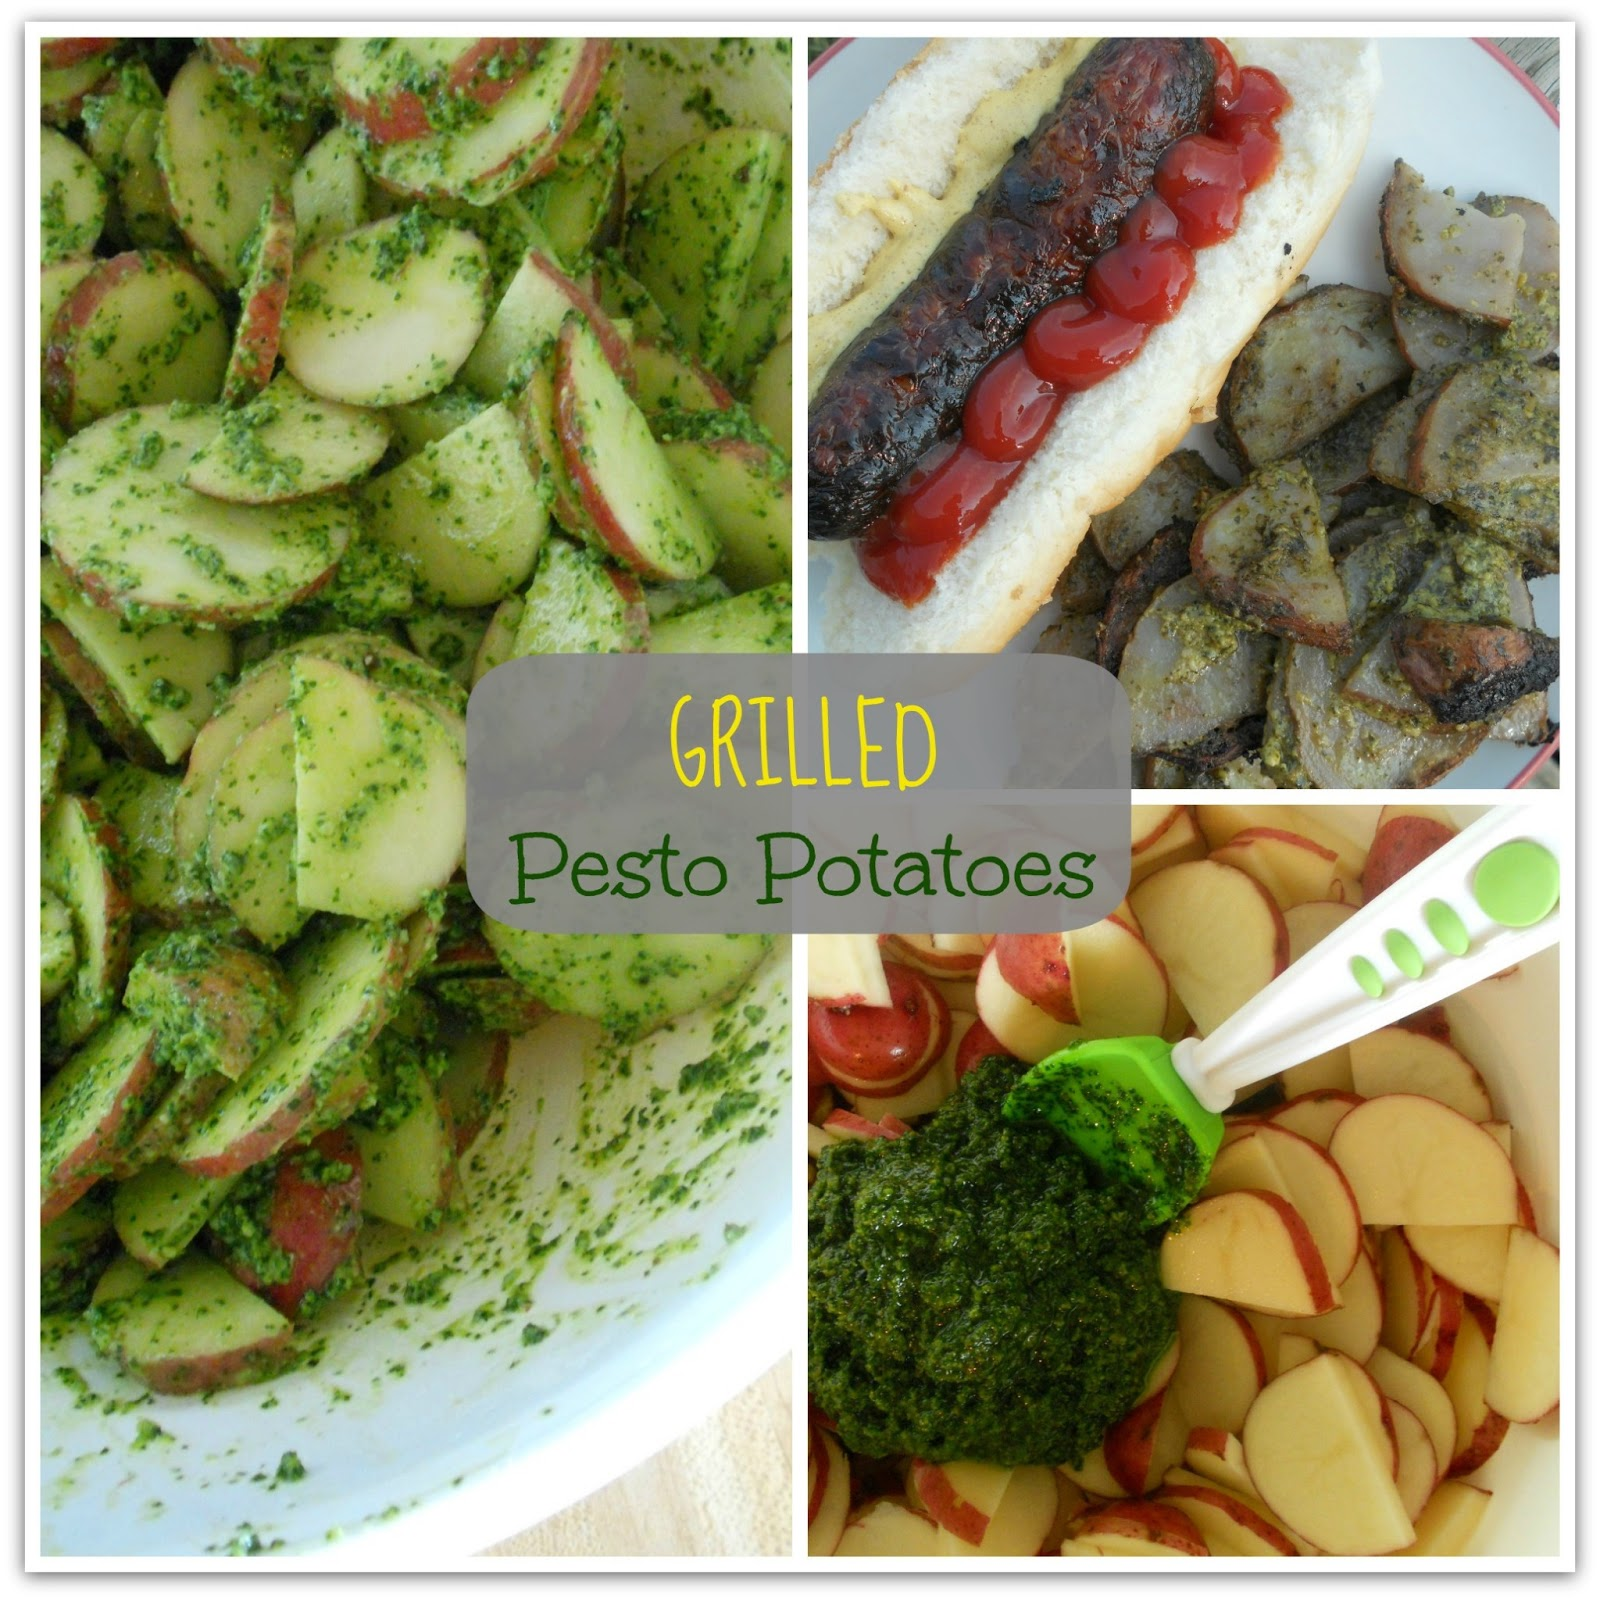 Ally's Sweet and Savory Eats: Grilled Pesto Potatoes